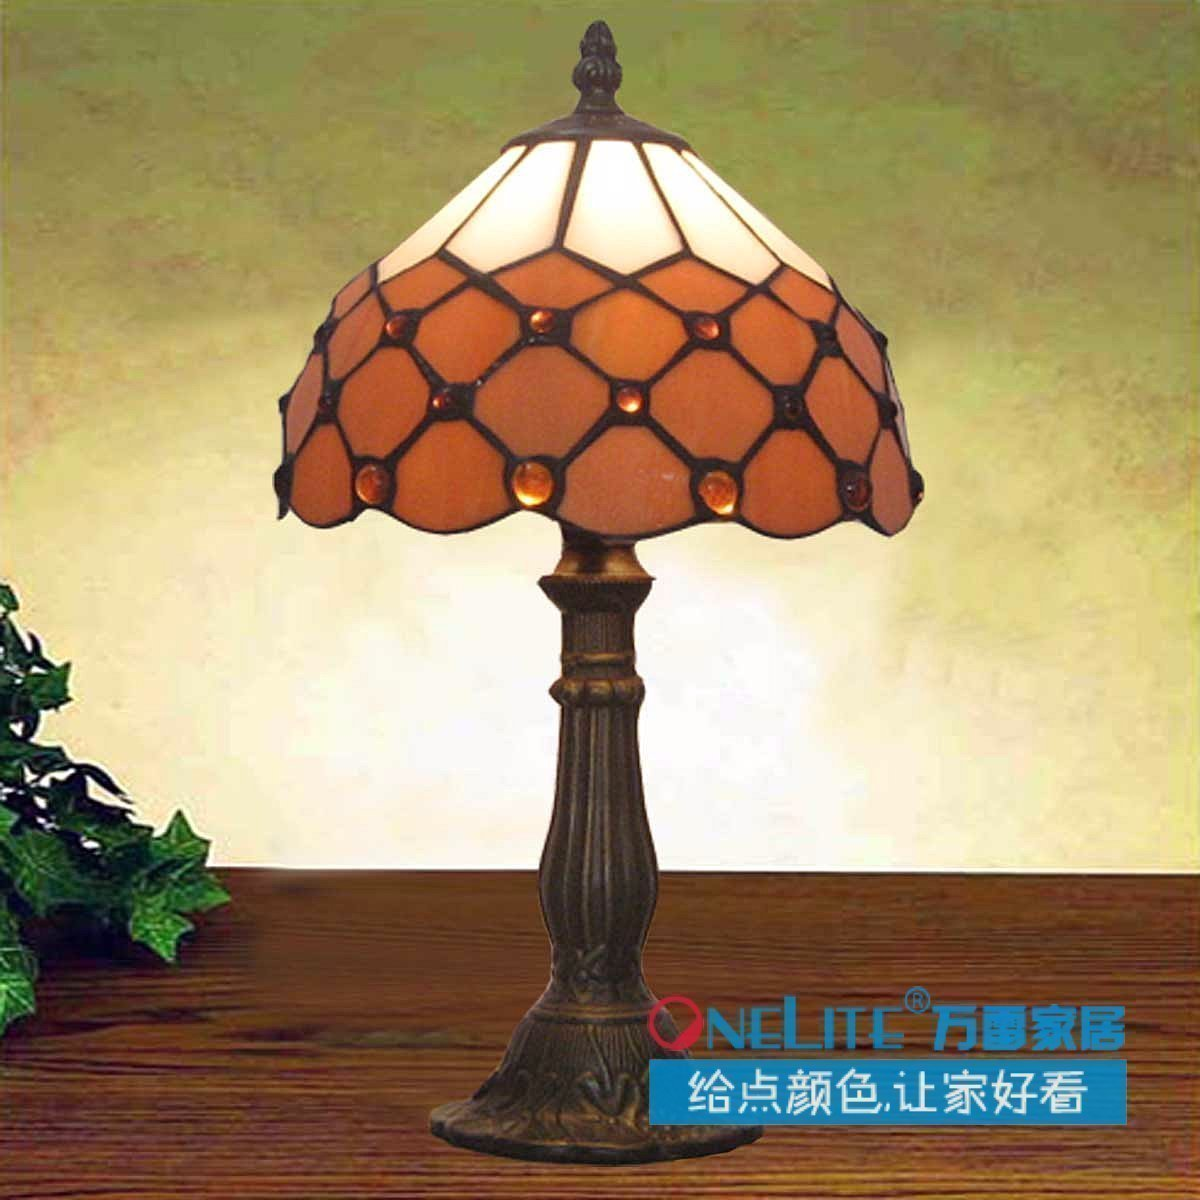 China red glass table lamp china glass table lamp - 2016 Real Iron Glass Halogen Bulbs No Table Lamps Table Lamp New Arrival Red Beads 8